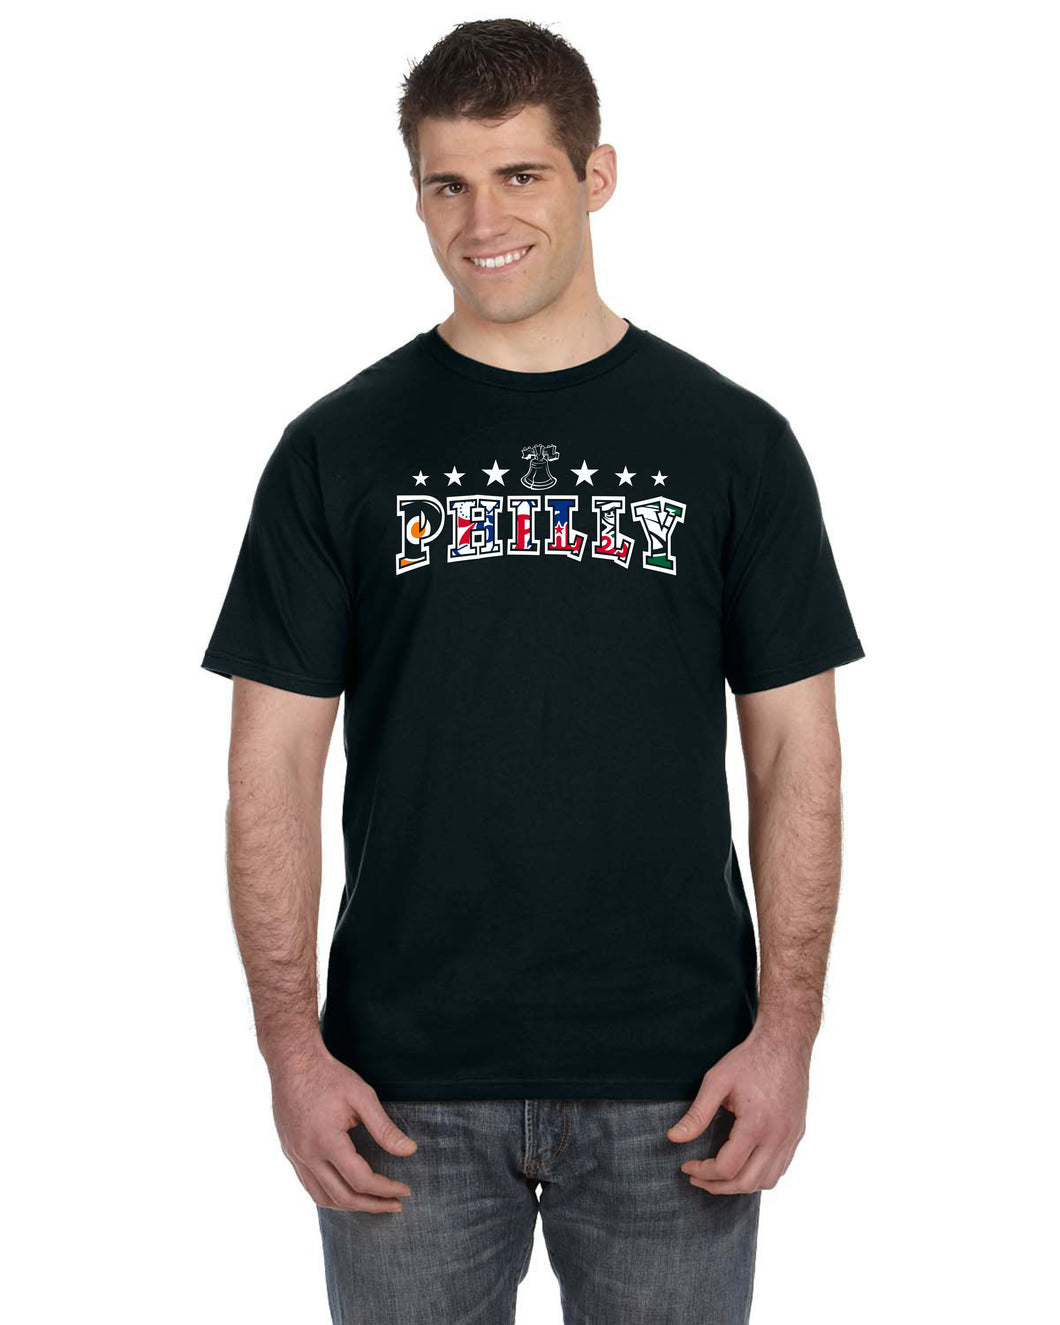 Philly Sports Tshirt, adult and youth 980